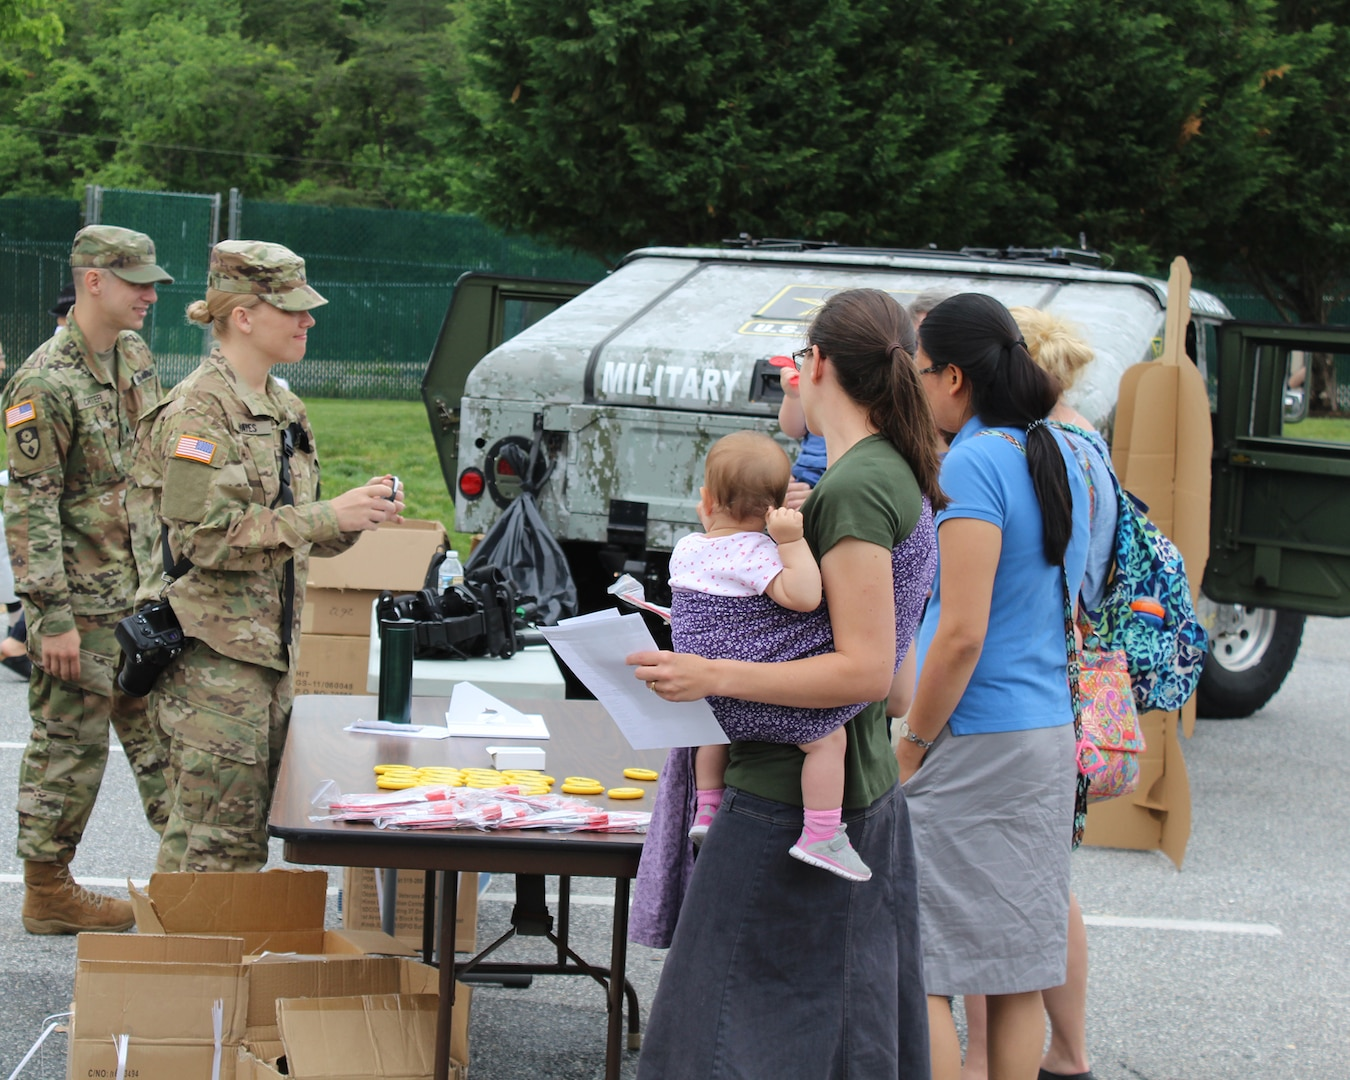 Soldiers from the 200th Military Police Command brought a Humvee for kids to explore and educated visitors about their command and the serving in the U.S. Army Reserve.